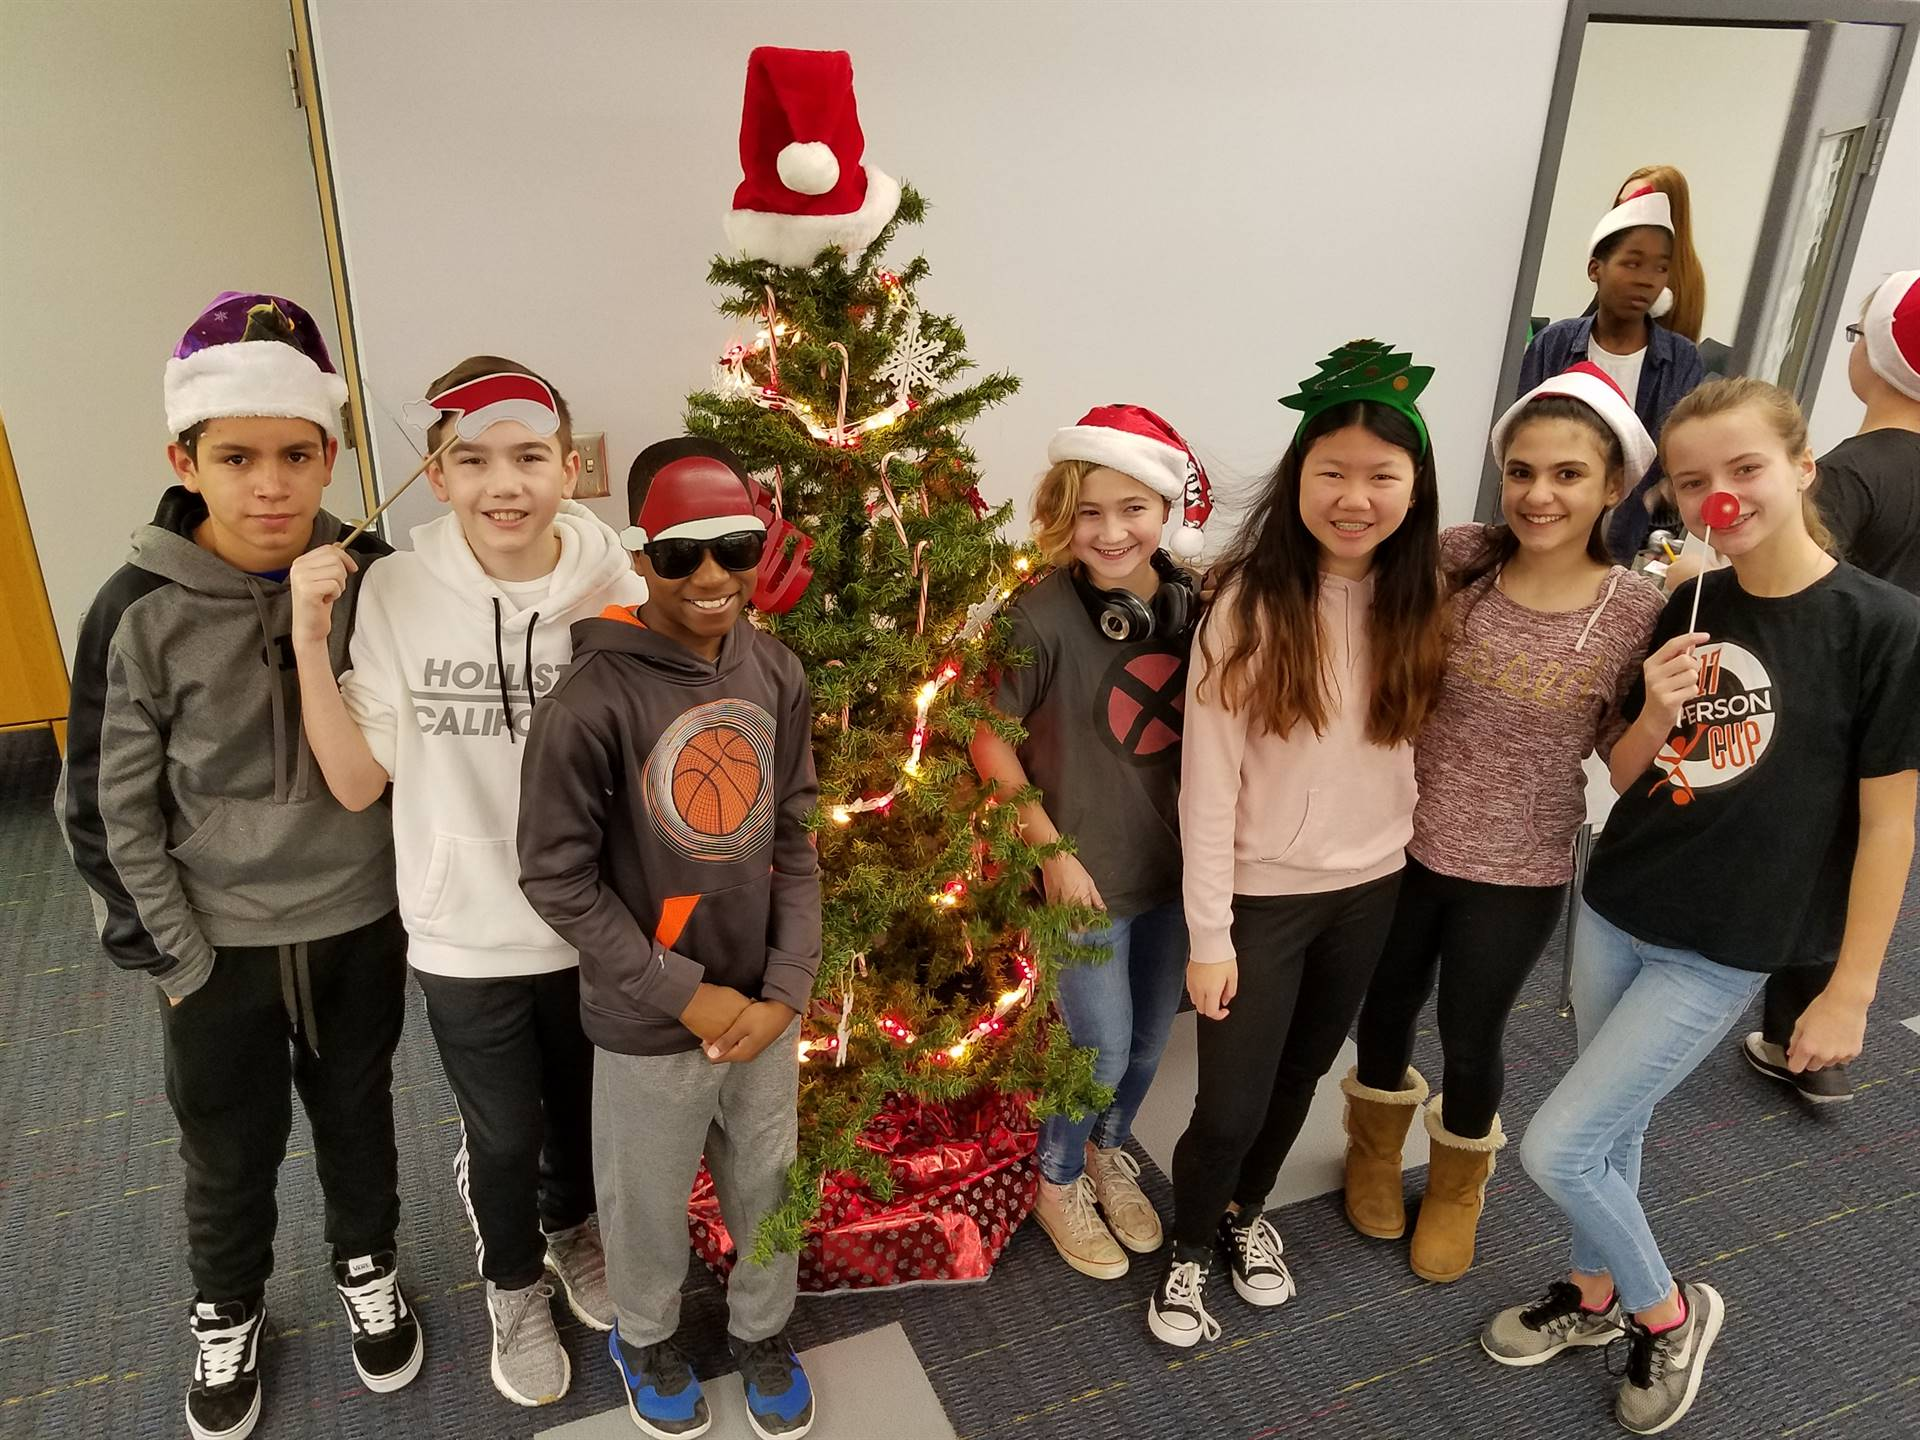 Some of our IndyActs students getting their festive on!